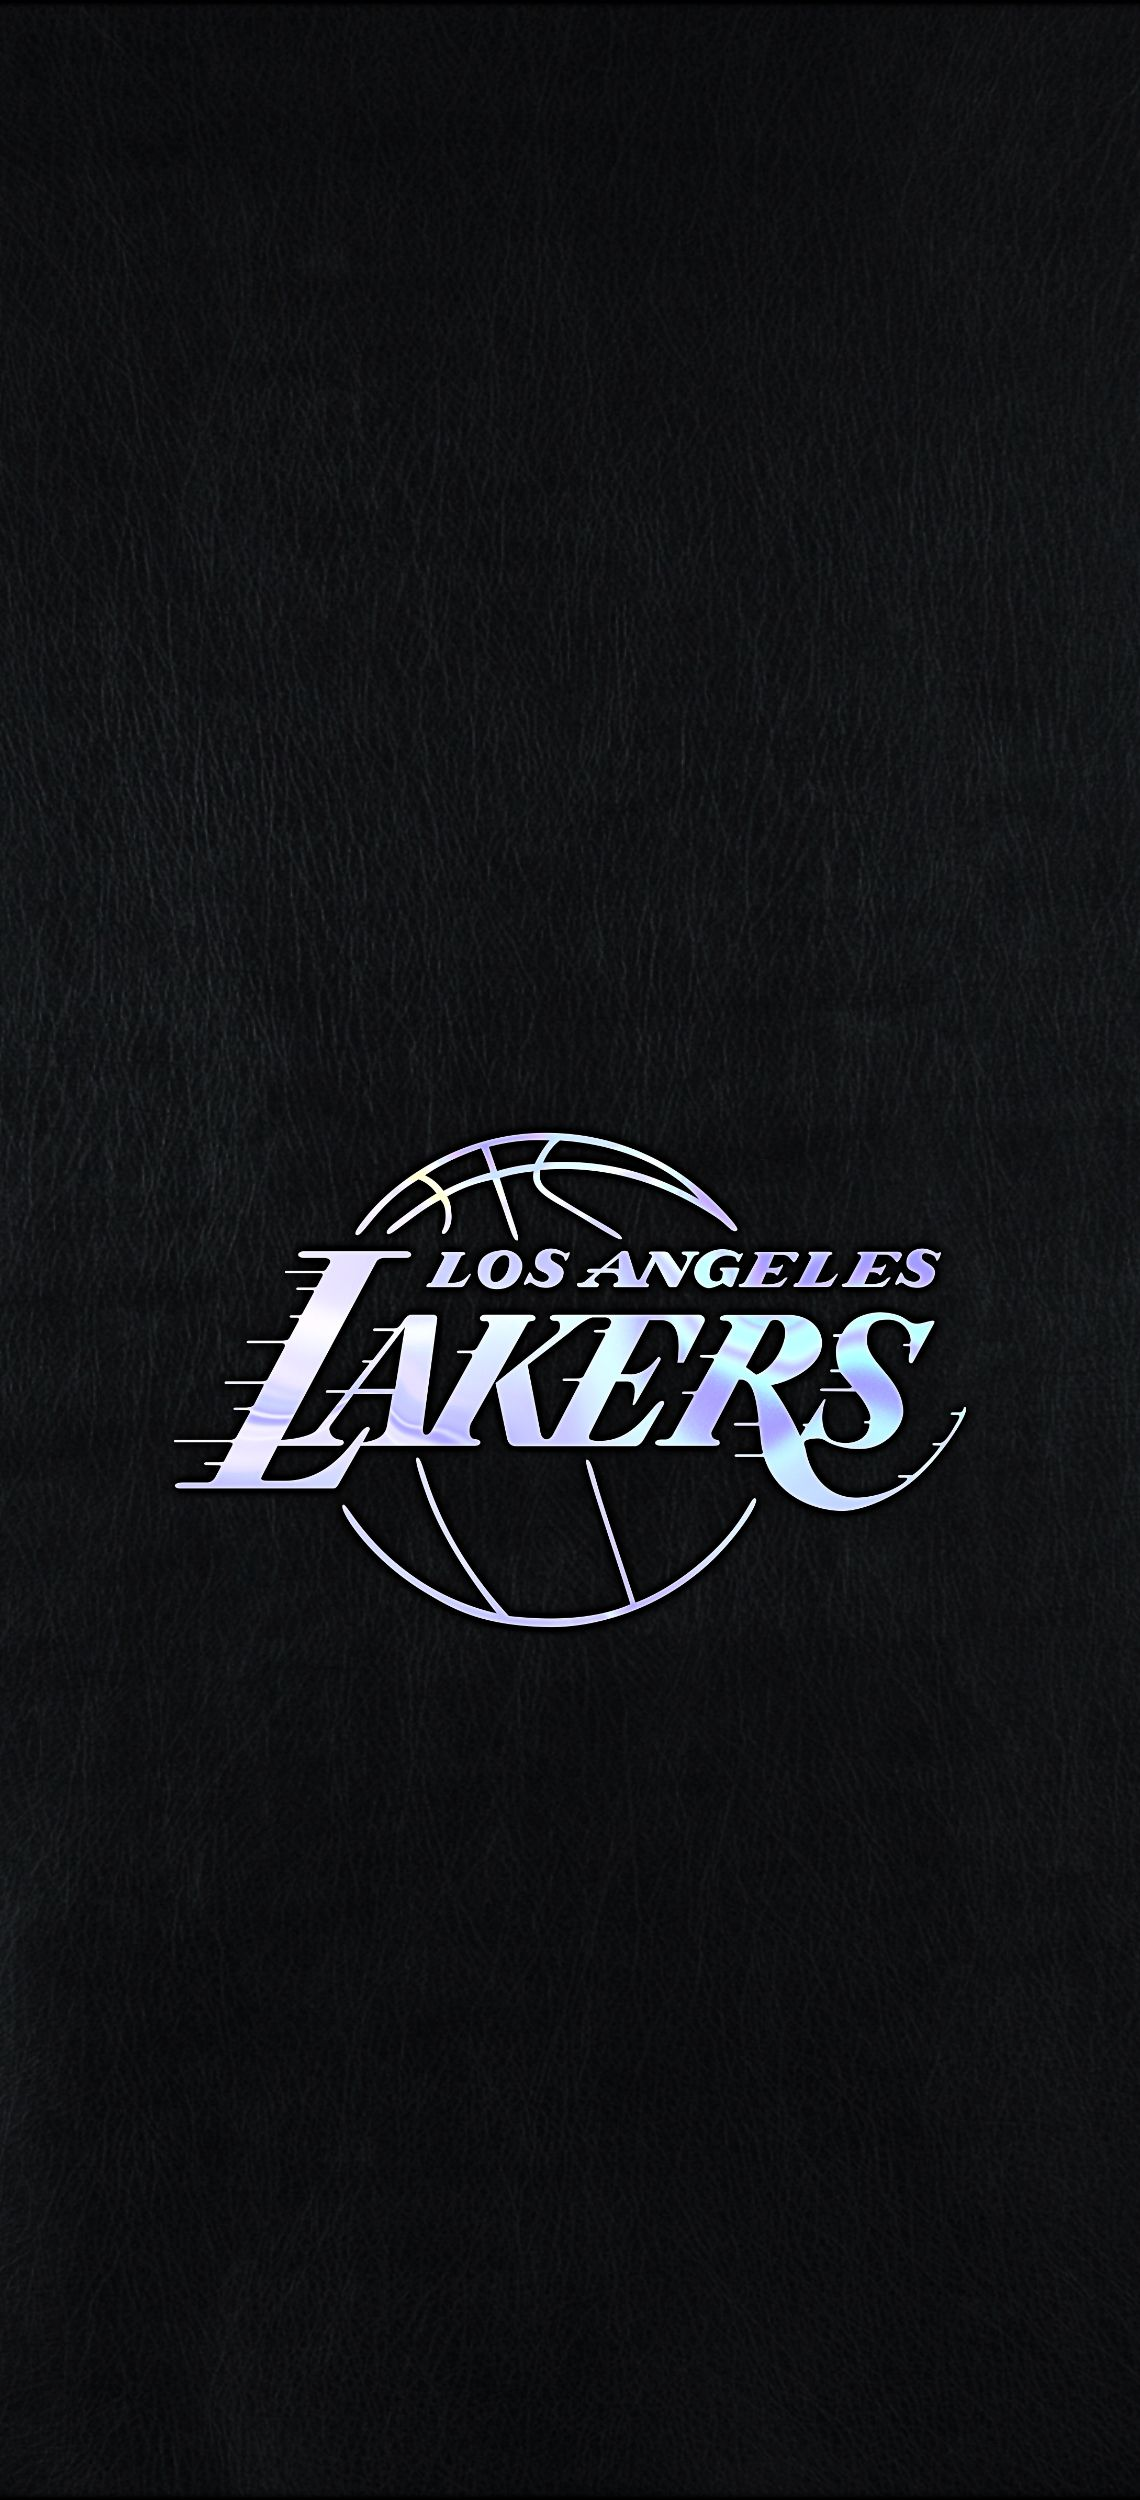 Sportsign Shop Redbubble In 2020 Lakers Wallpaper Nba Basketball Teams Lakers Logo